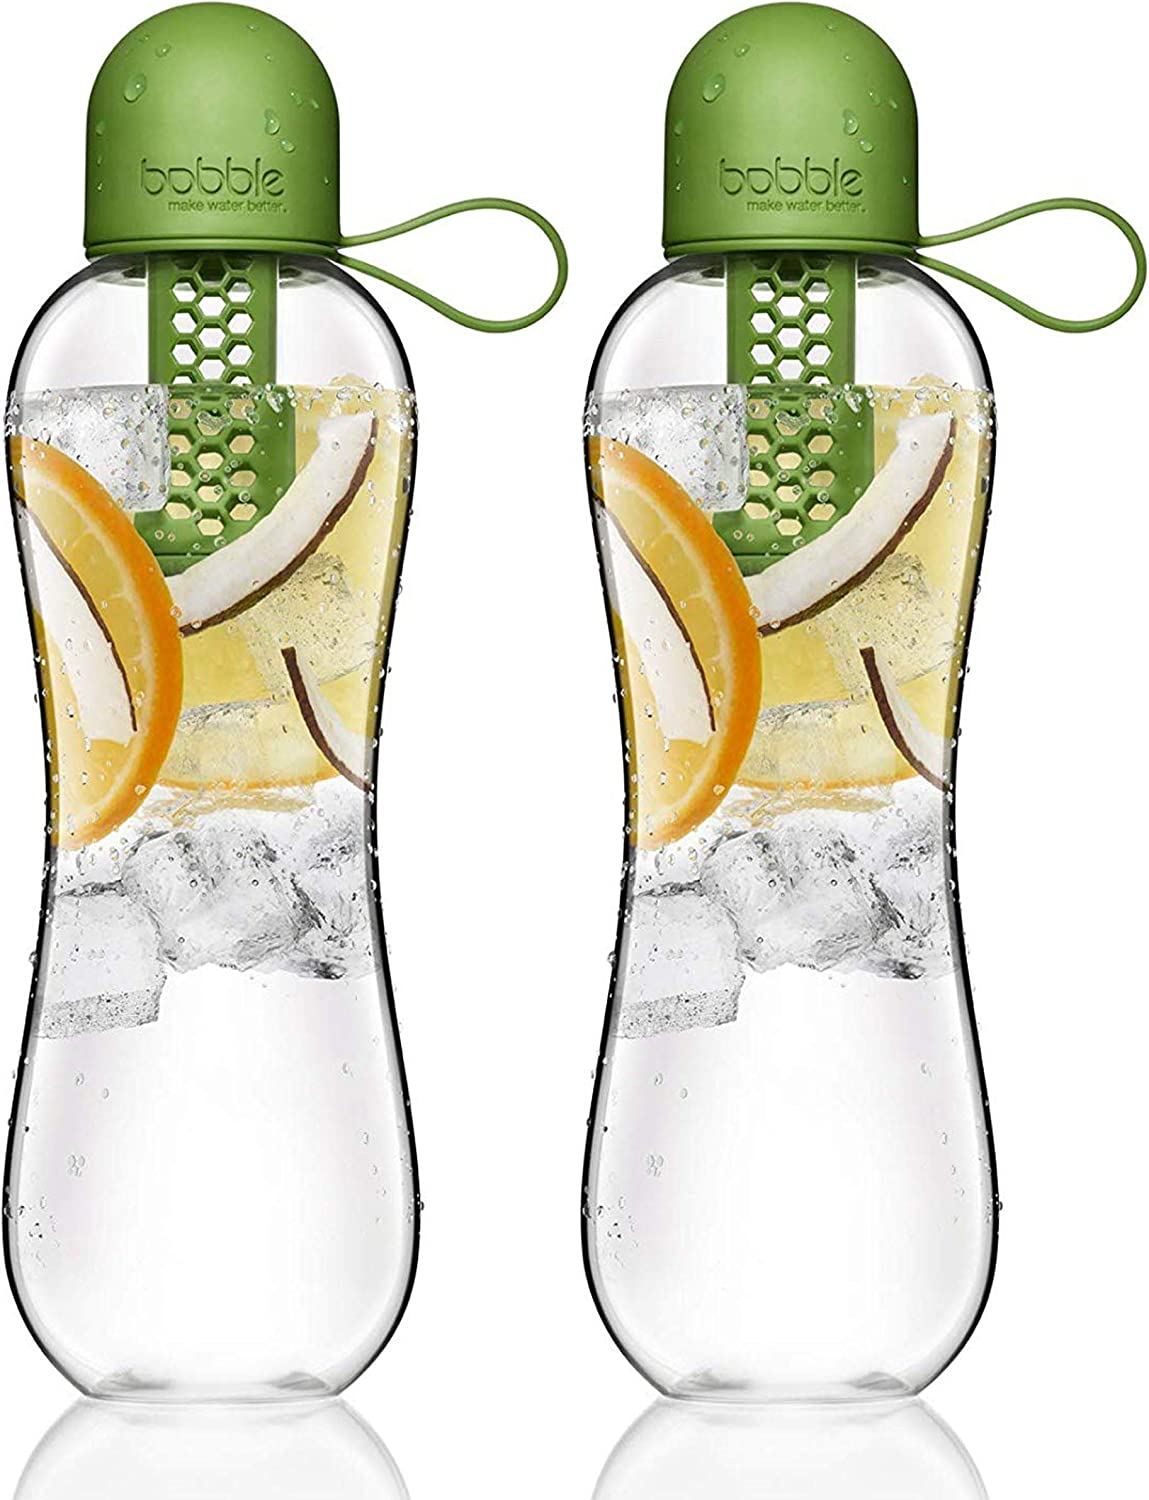 2 PACK bobble Plus Water Filtration//Infusion Citron